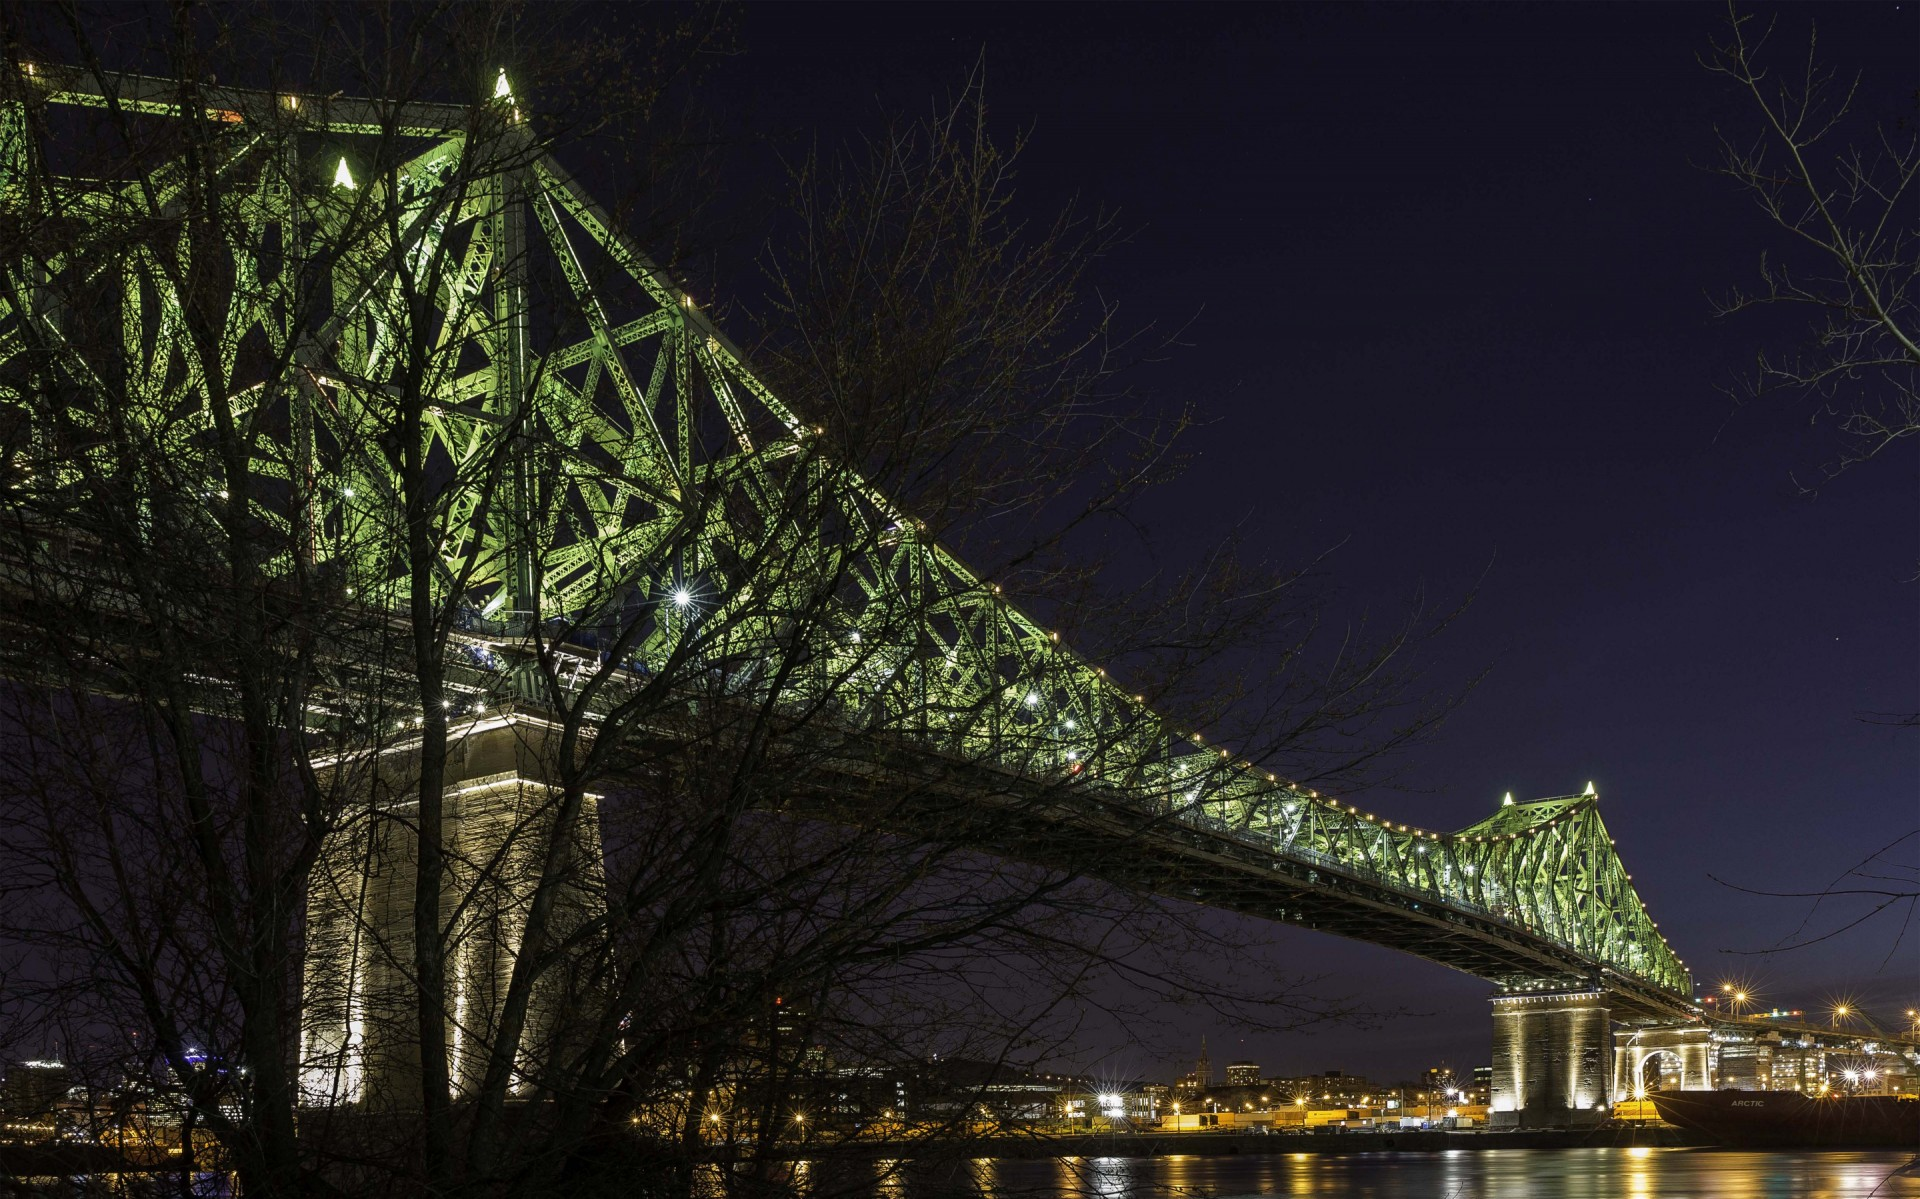 The lighting control system gathers data from the city, utilizing the weather, traffic and tweets, and then reflects them back to Montreal in real time. – The Jacques Cartier and Champlain Bridges Incorporated